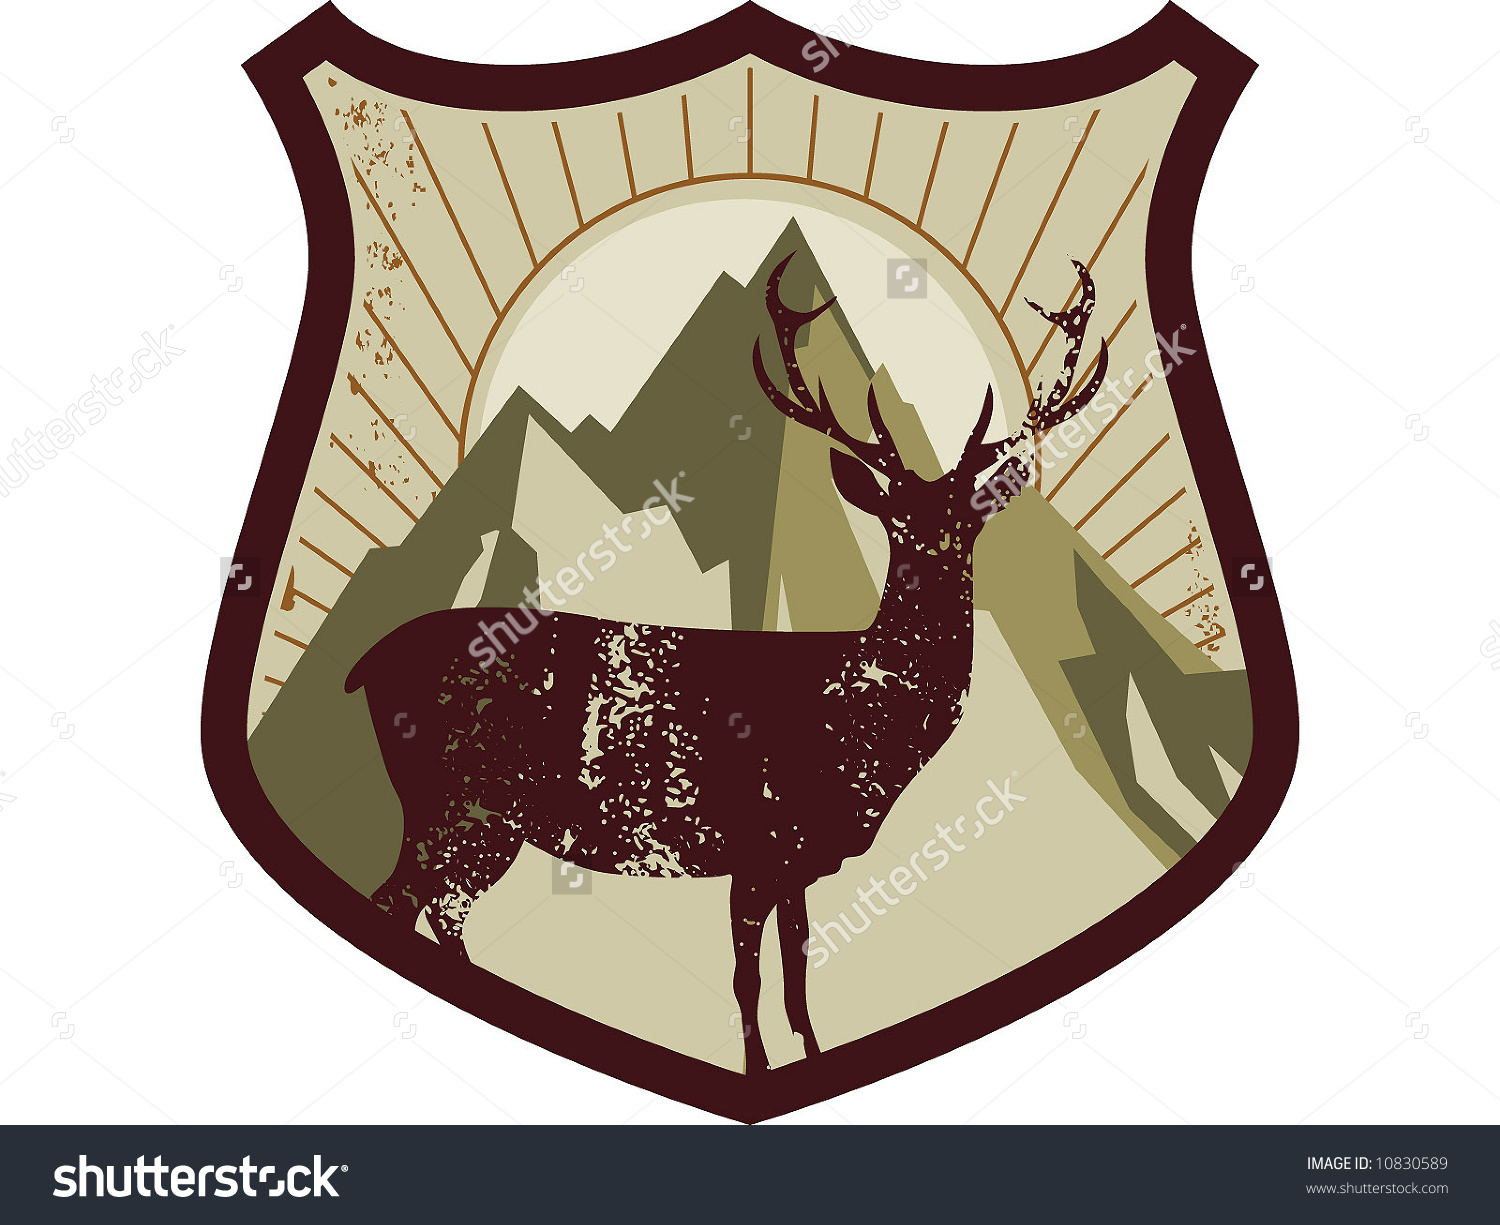 Deer Mountain Emblem Stock Vector Illustration 10830589 : Shutterstock.